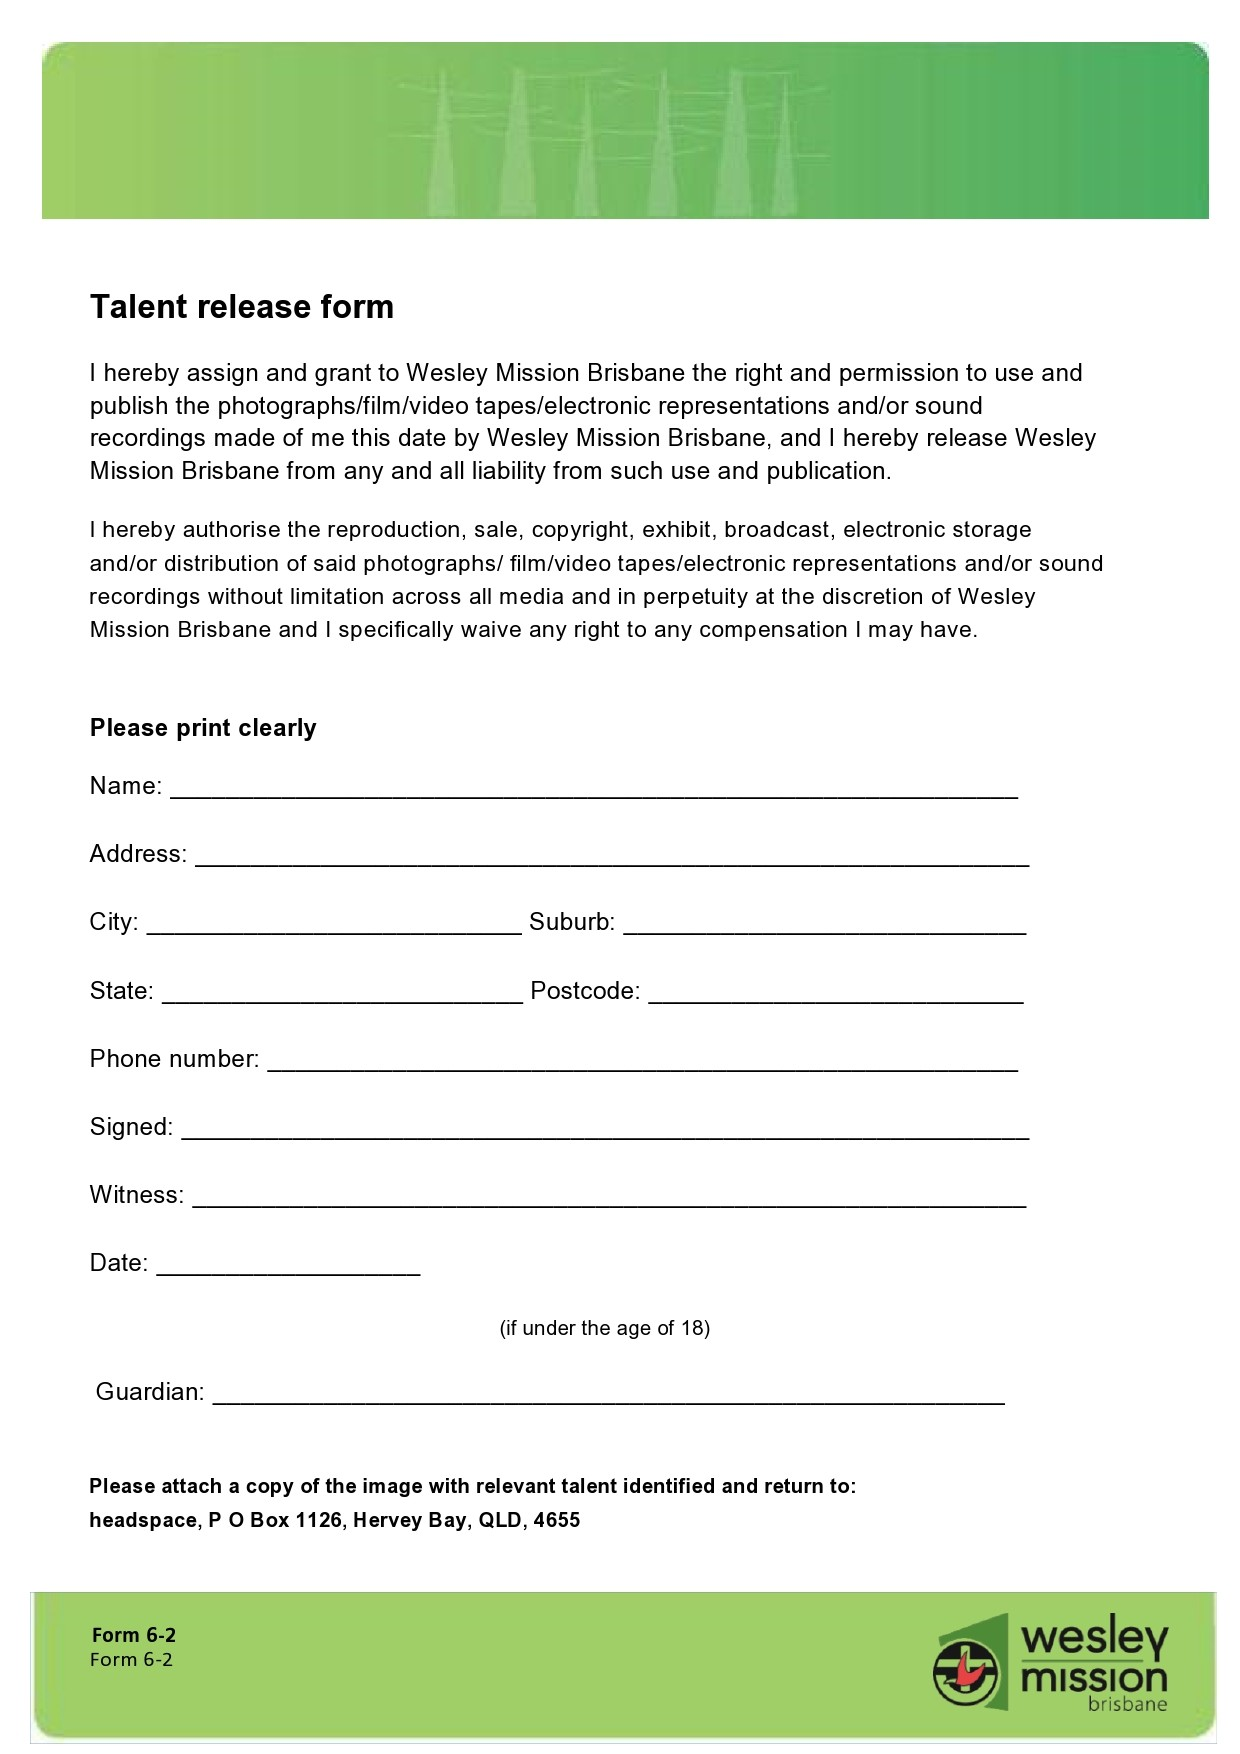 Free talent release form 32